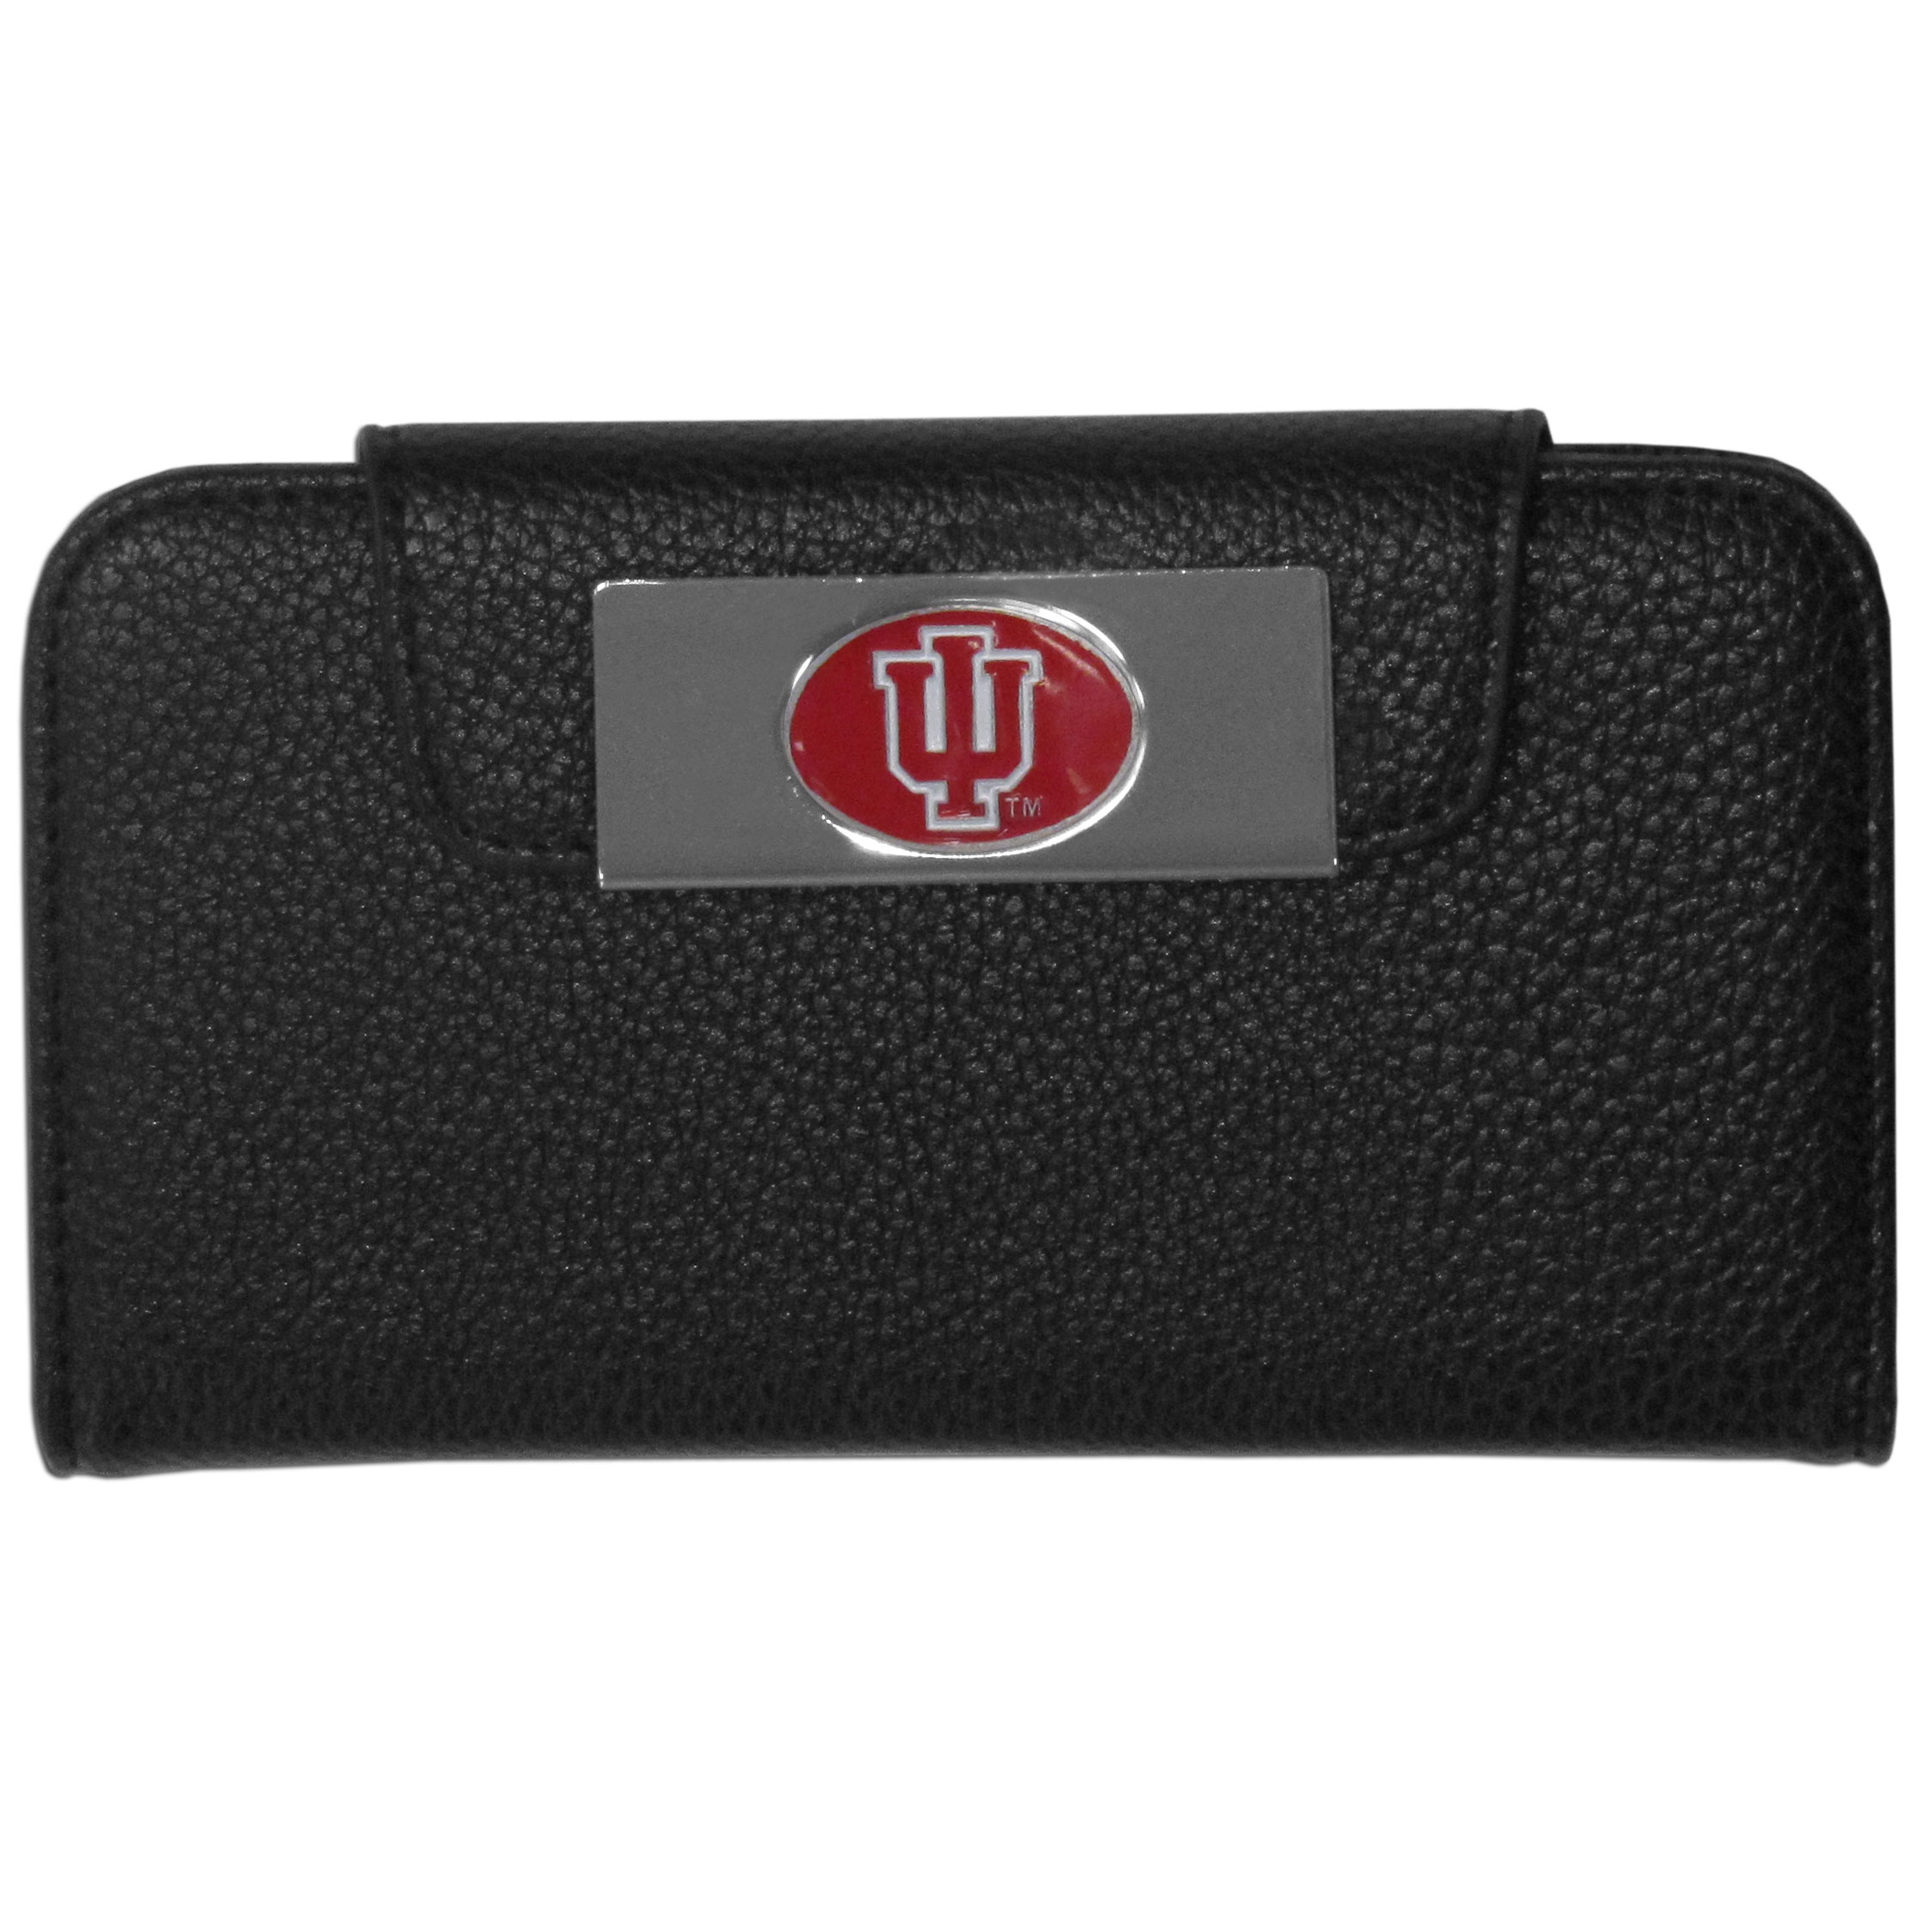 Indiana Hoosiers Samsung Galaxy S4 Wallet Case - This new & wildly popular case is ideal for those who like to travel light! The stylish case has an inner hard shell that securely holds your phone while allowing complete access to the phone's functionality. The flip cover has slots for credit cards, business cards and identification. The magnetic flip cover has a metal Indiana Hoosiers emblem on a high polish chrome backing. Fits the Samsung Galaxy S4